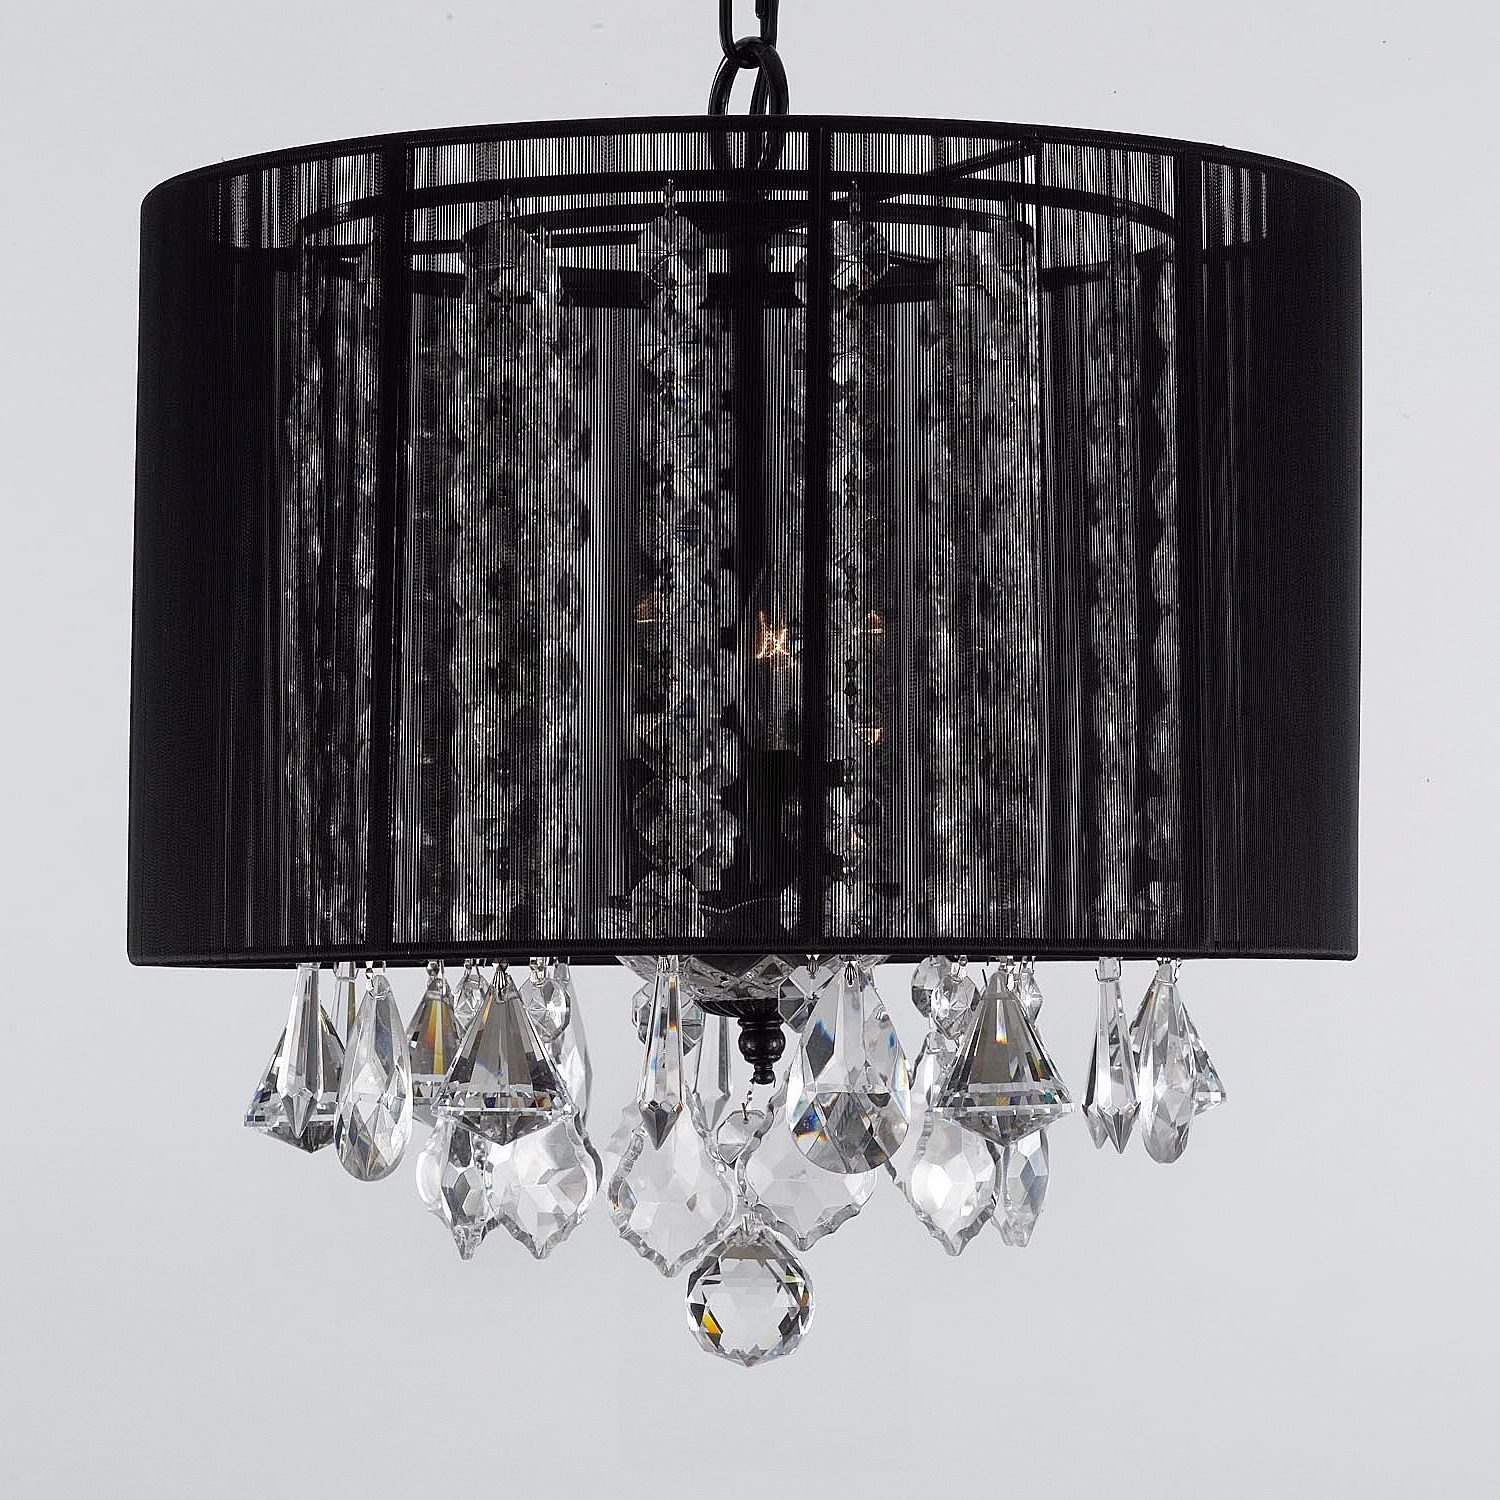 Most Popular Crystal Chandeliers With Shades In G7 Black/604/3 Gallery Chandeliers With Shades Crystal Chandelier (View 13 of 20)